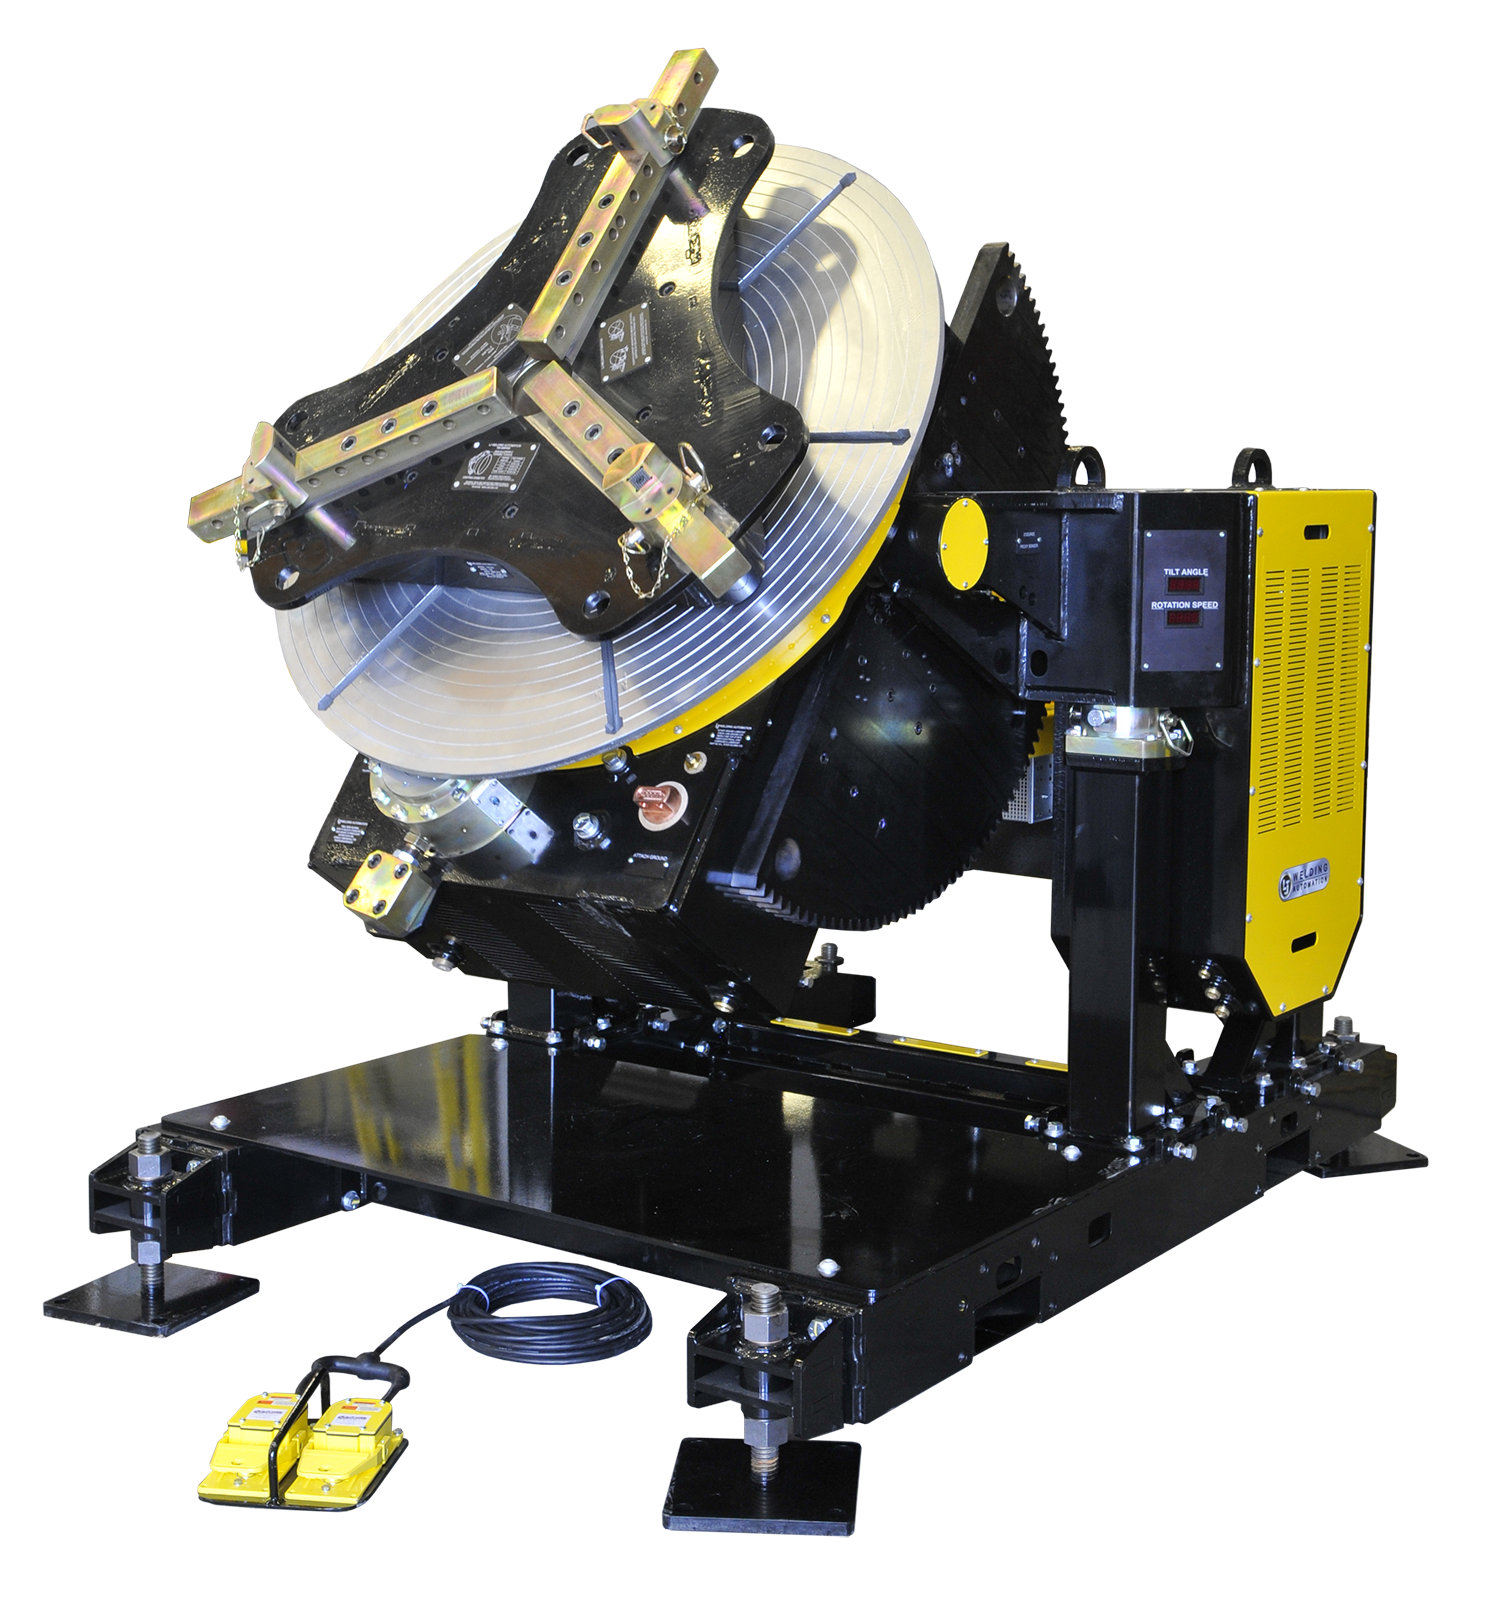 t24ps-100 gear tilt pipe welding positioner for sale